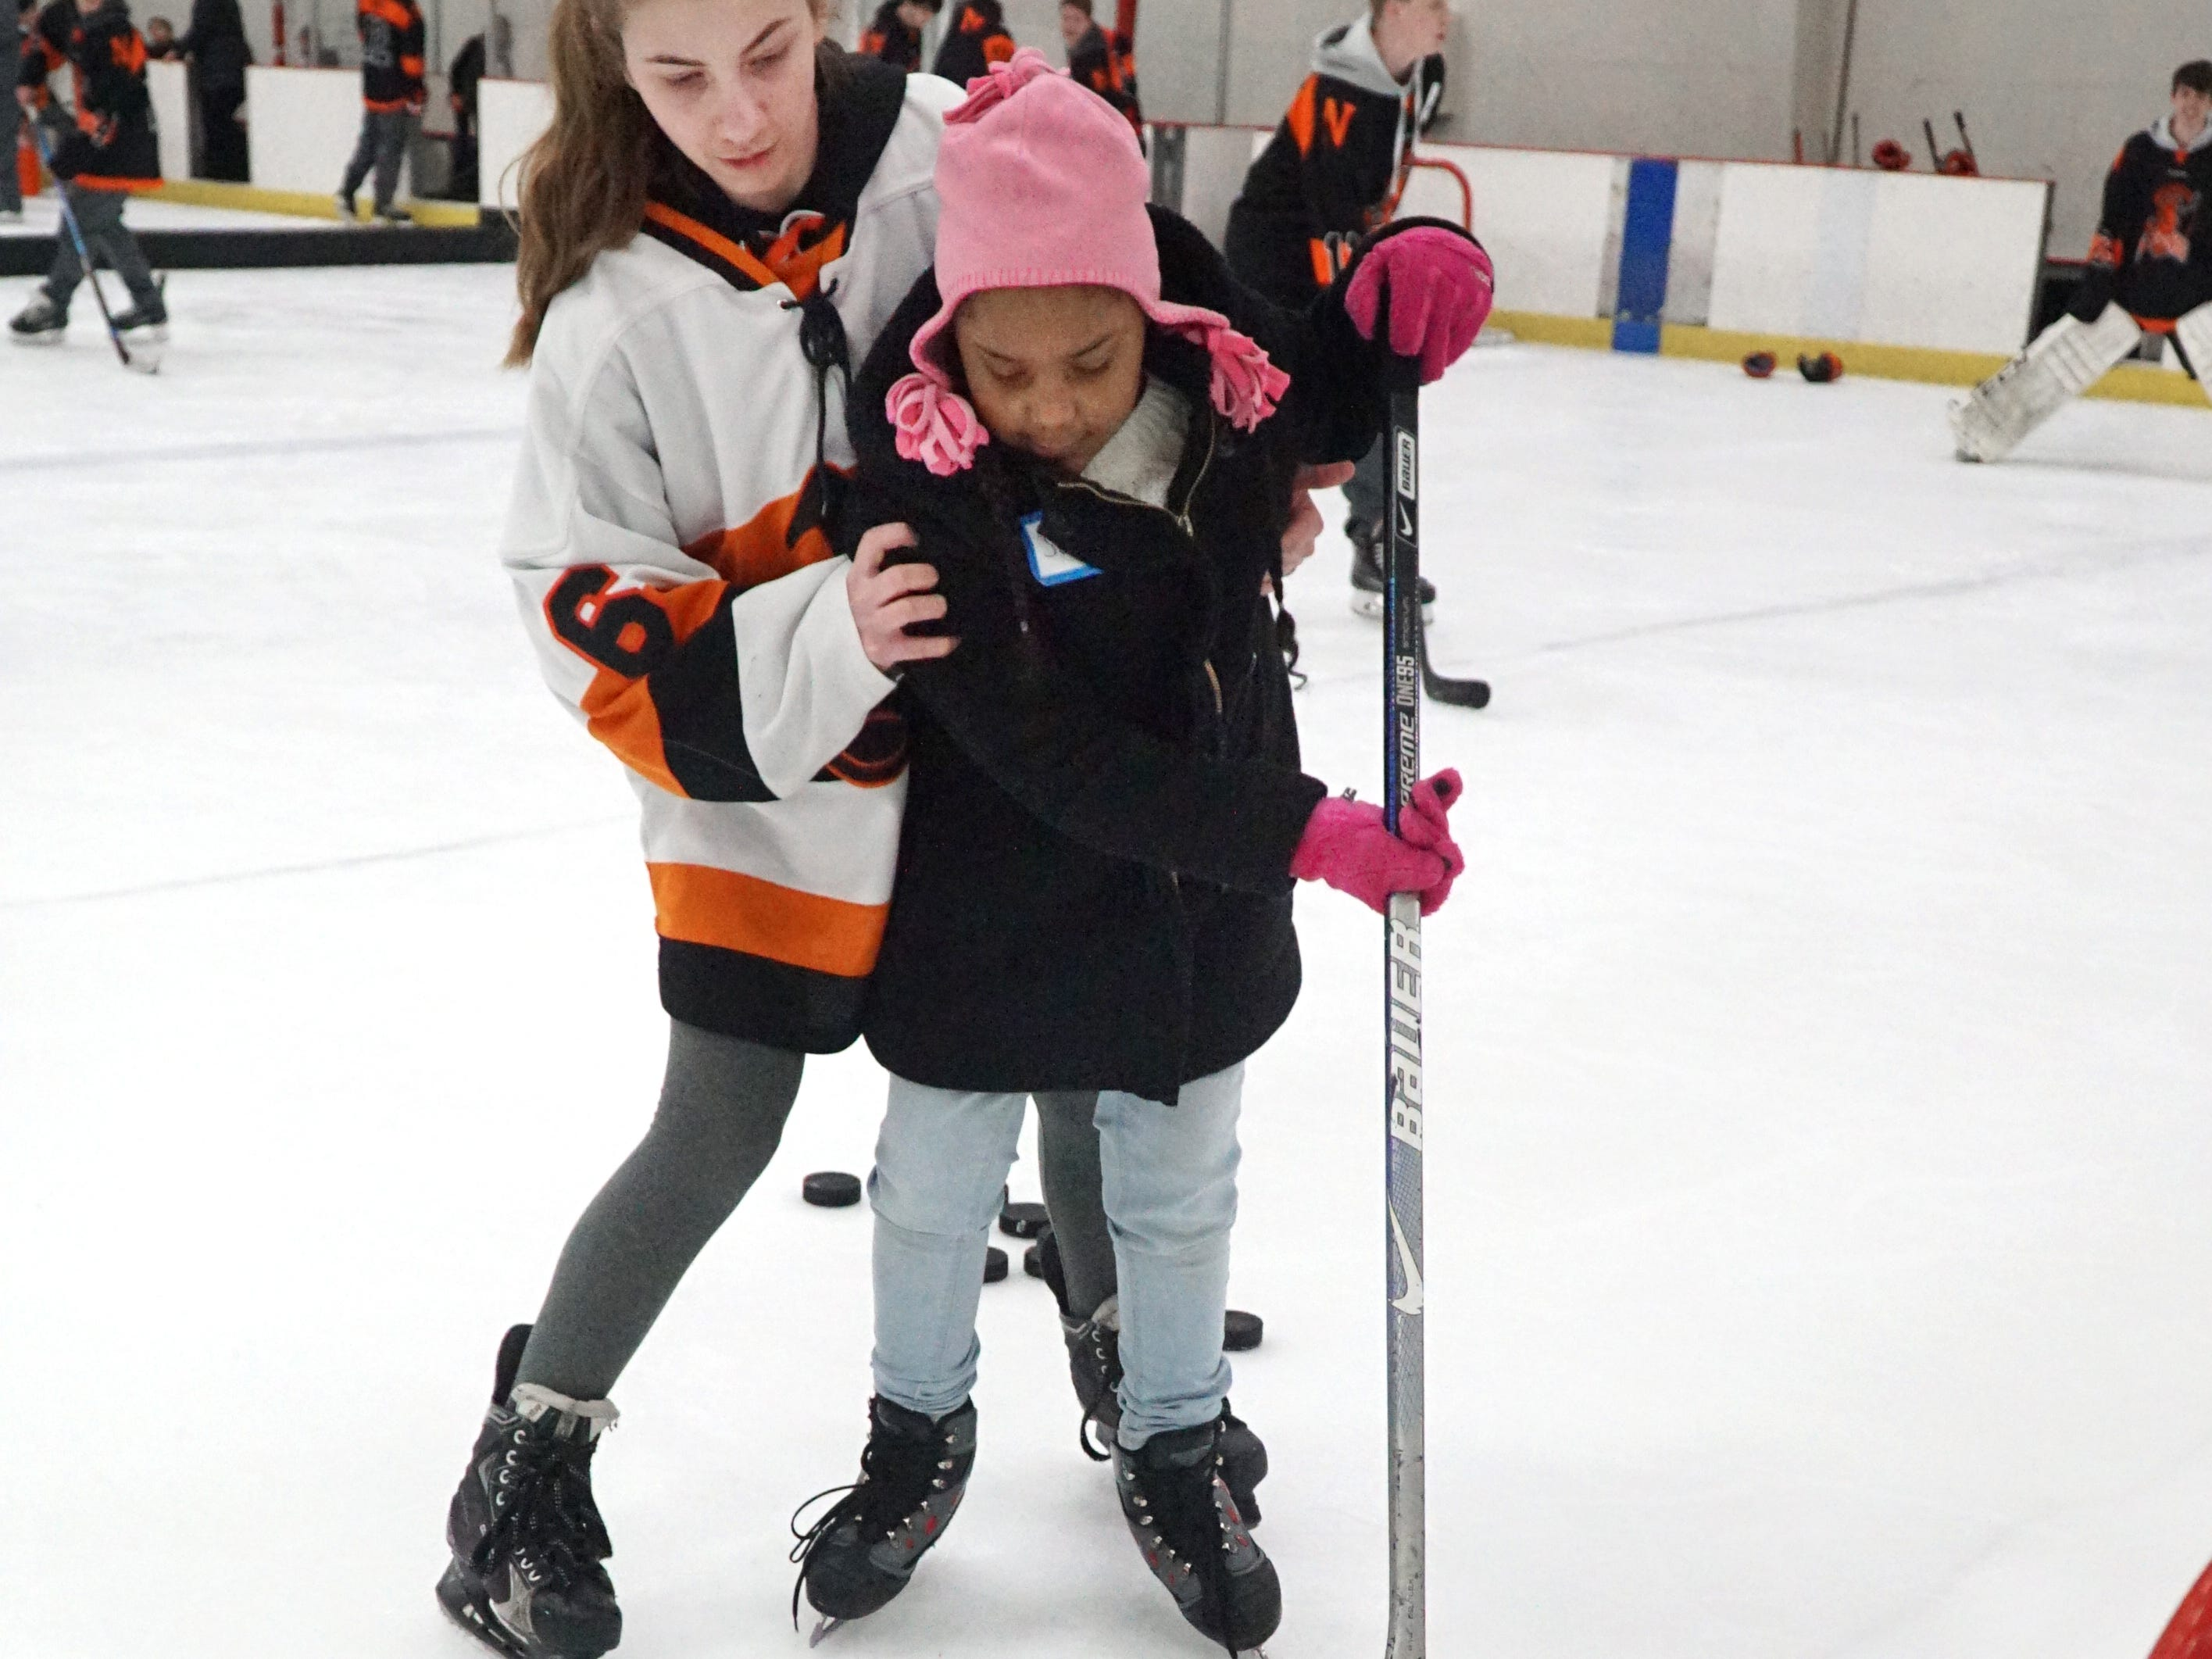 Northville High School hockey player Kalliopi Brahnos, a freshman, helps Neinas Elementary visitor Senaya Bailey, 9, with her puck-shooting abilities during a Feb. 13 session at the Novi Ice Arena.